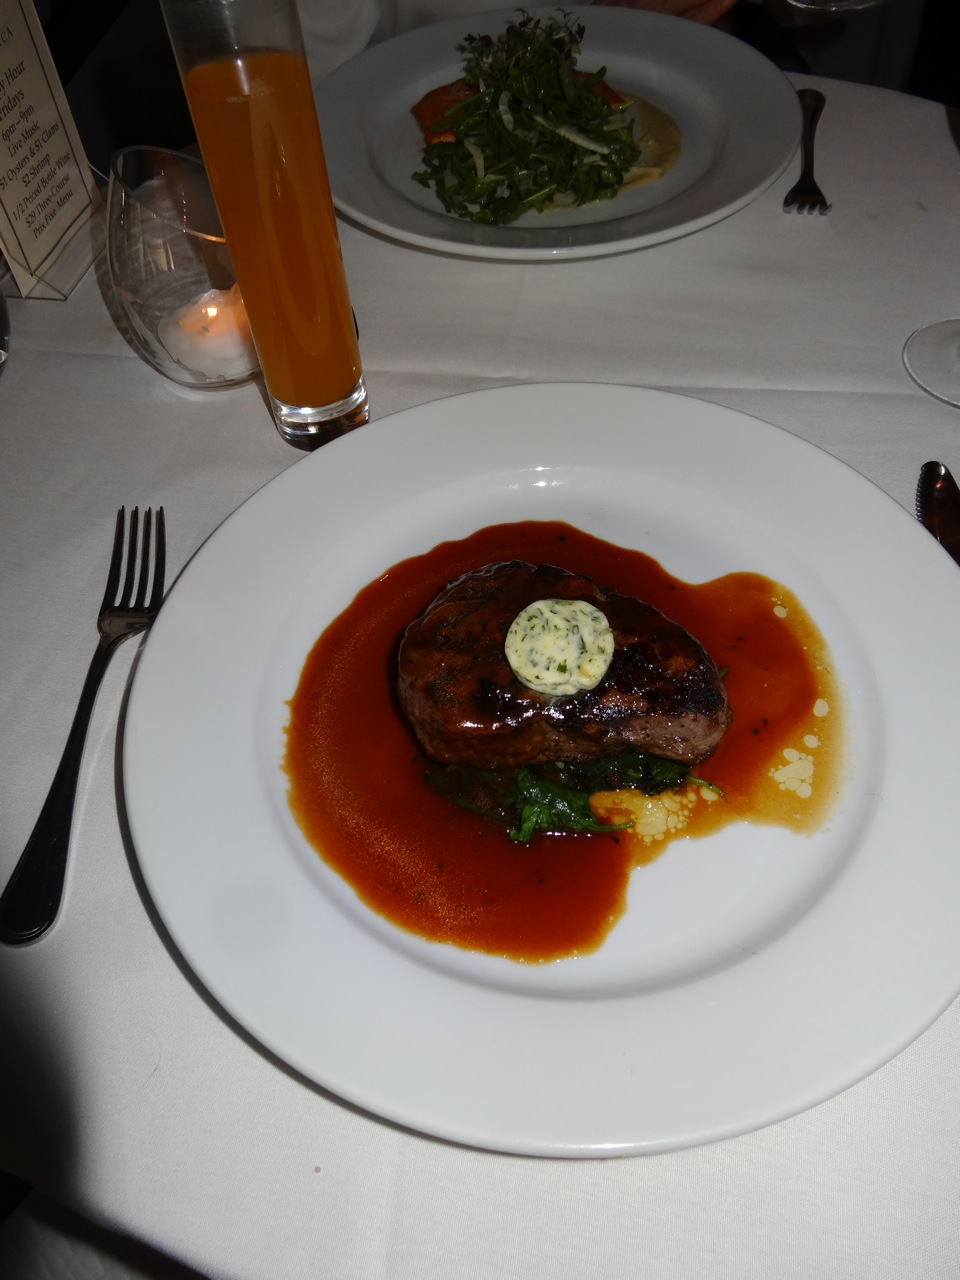 The Filet Mignon With Roasted